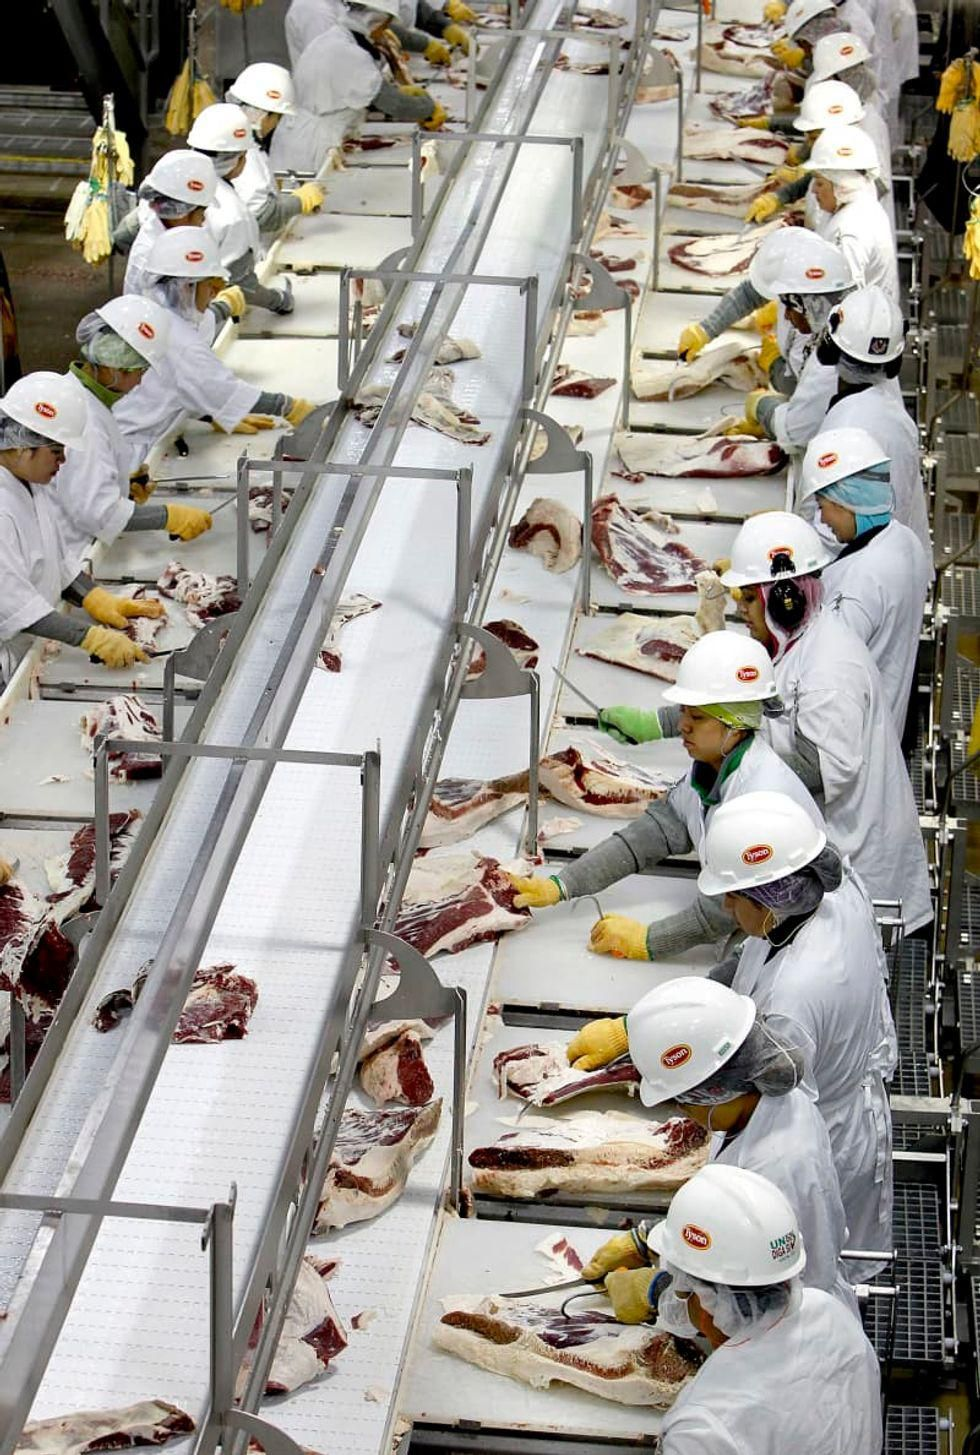 Meat and poultry plants are Covid hotbeds -- and drove outbreaks: report